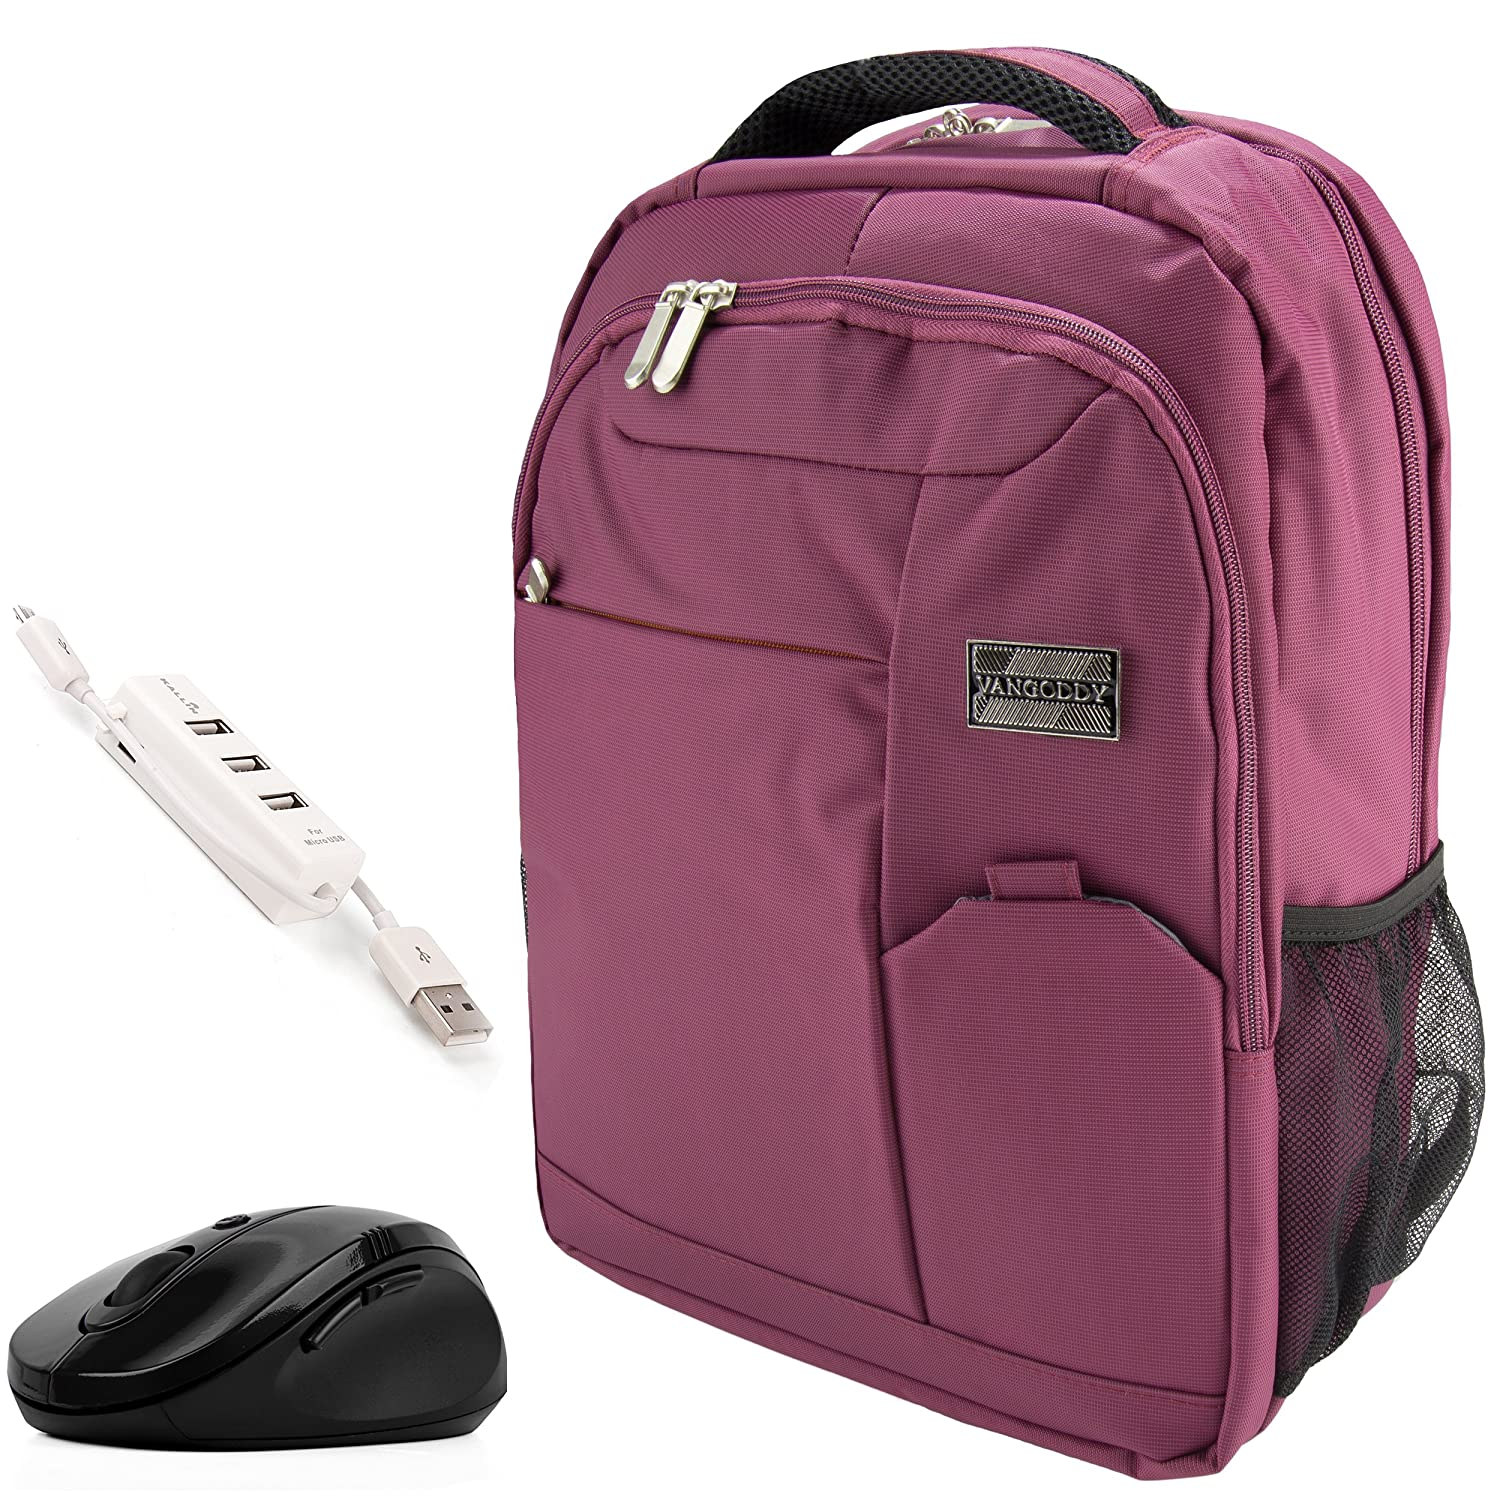 "hot sale VanGoddy Orchid Purple Executive Anti-Theft Laptop Backpack w/ Wireless Mouse and USB HUB for Lenovo IdeaPad / Yoga / Flex / ChromeBook / ThinkPad / Legion / 11""-15inch"